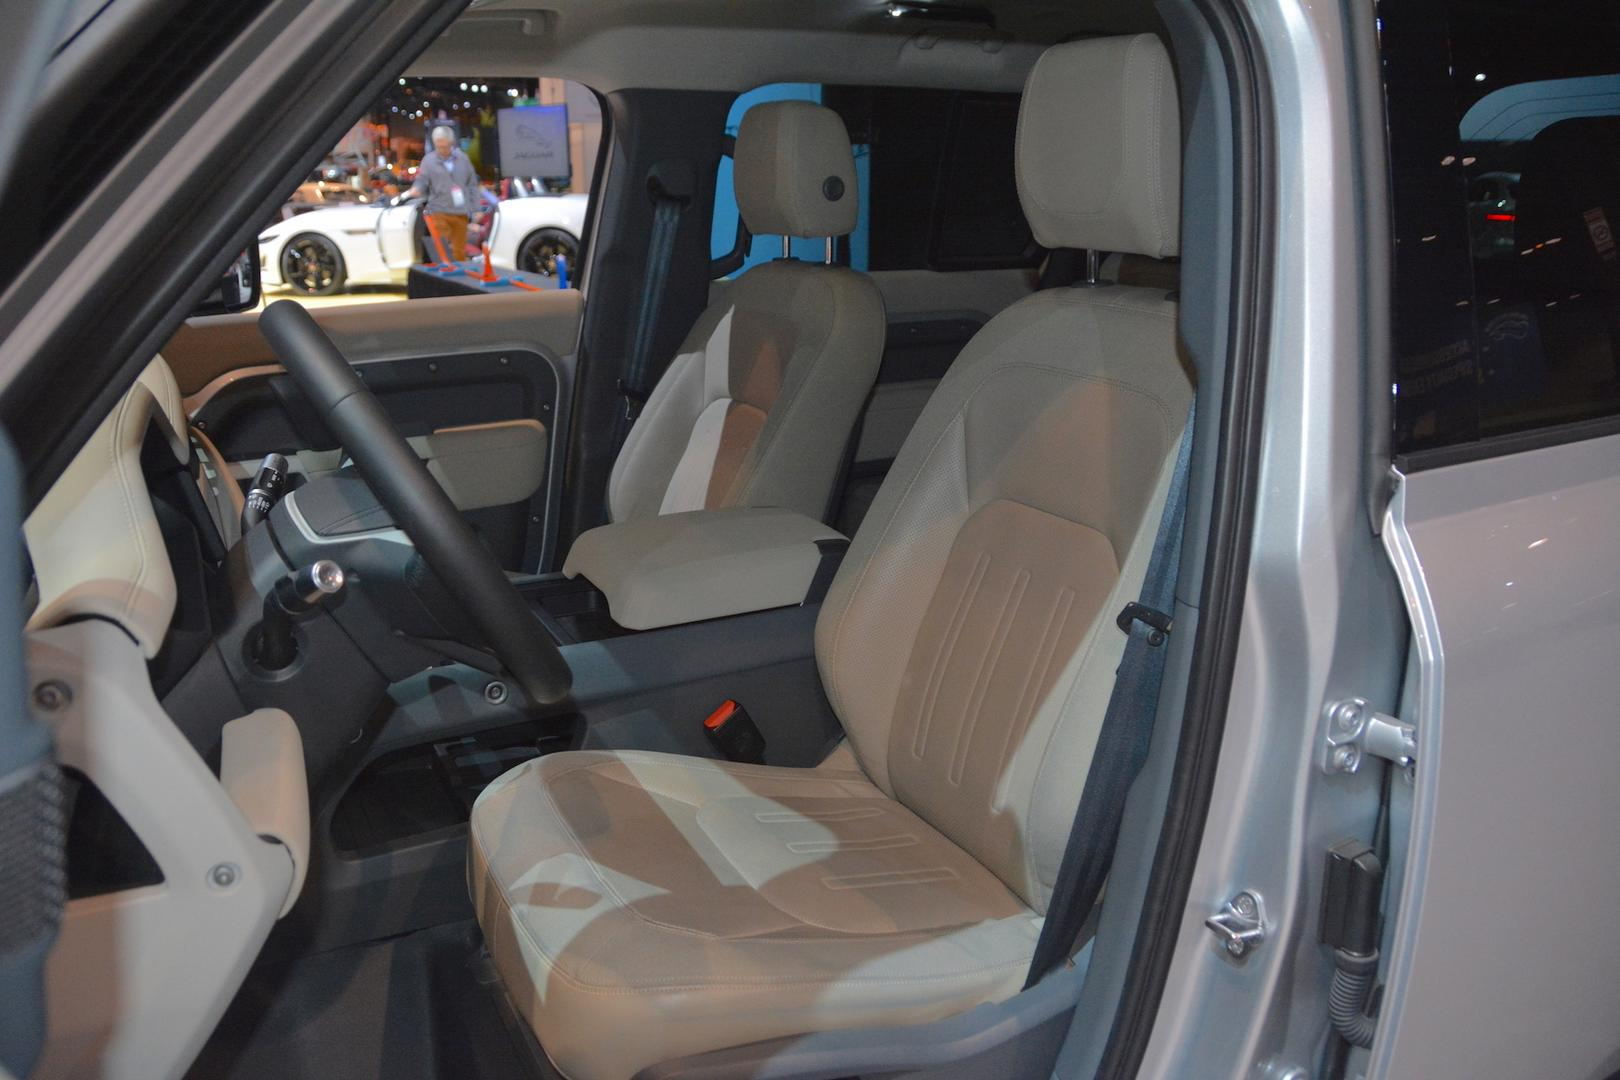 2020 Land Rover Defender Seats